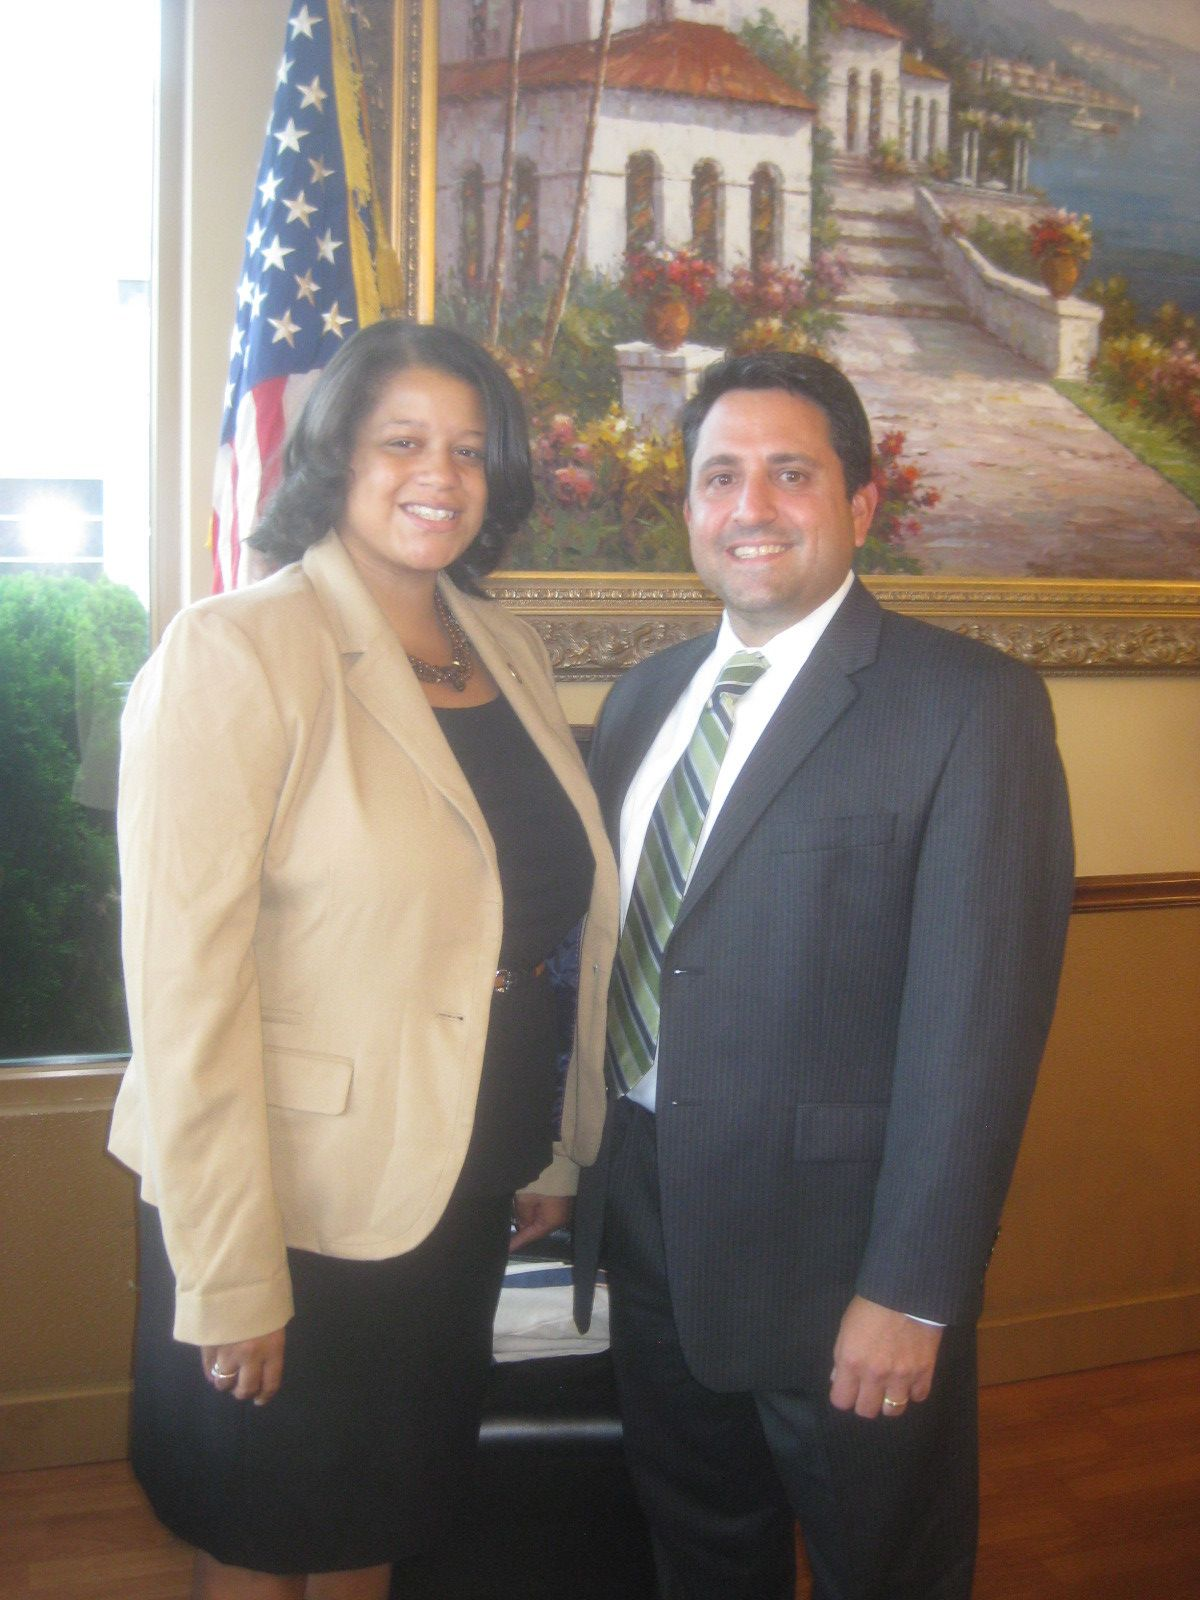 Franklin Square Chamber of Commerce President Joseph Ardito welcomed State Assemblywoman Michaelle Solages as a special guest.